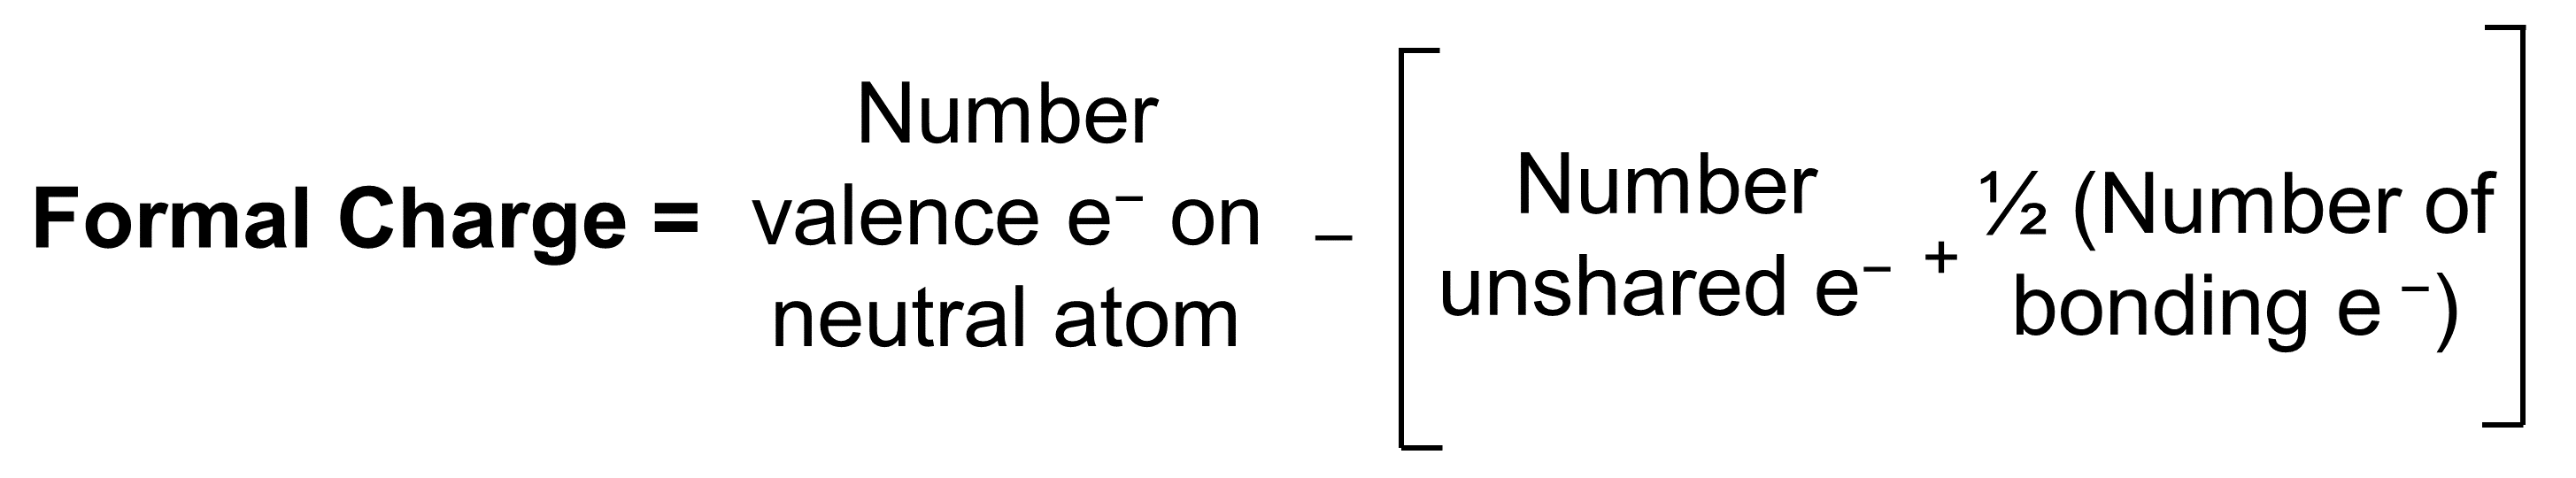 An equation is shown. The formal charge is equal to the number of valence electrons on the neutral atom minus the open parenthesis number of unshared electrons plus one half the number of bonding electrons close parenthesis.